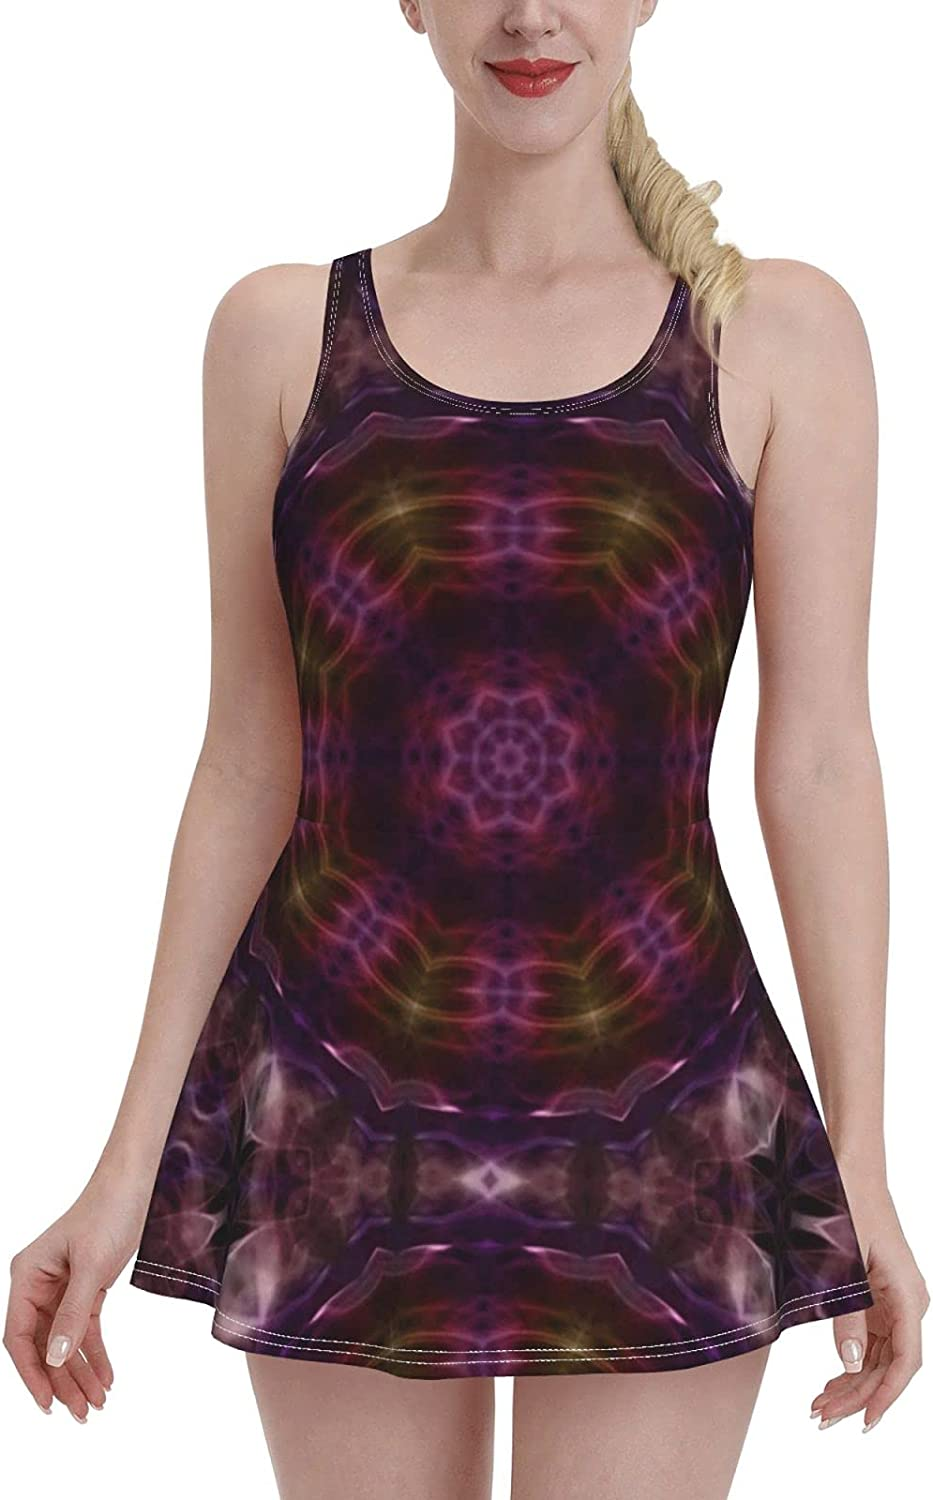 ZXZNC Abstract Aleidoscope Movement Geometric Circle and Star Shapes Tummy Control Bathin